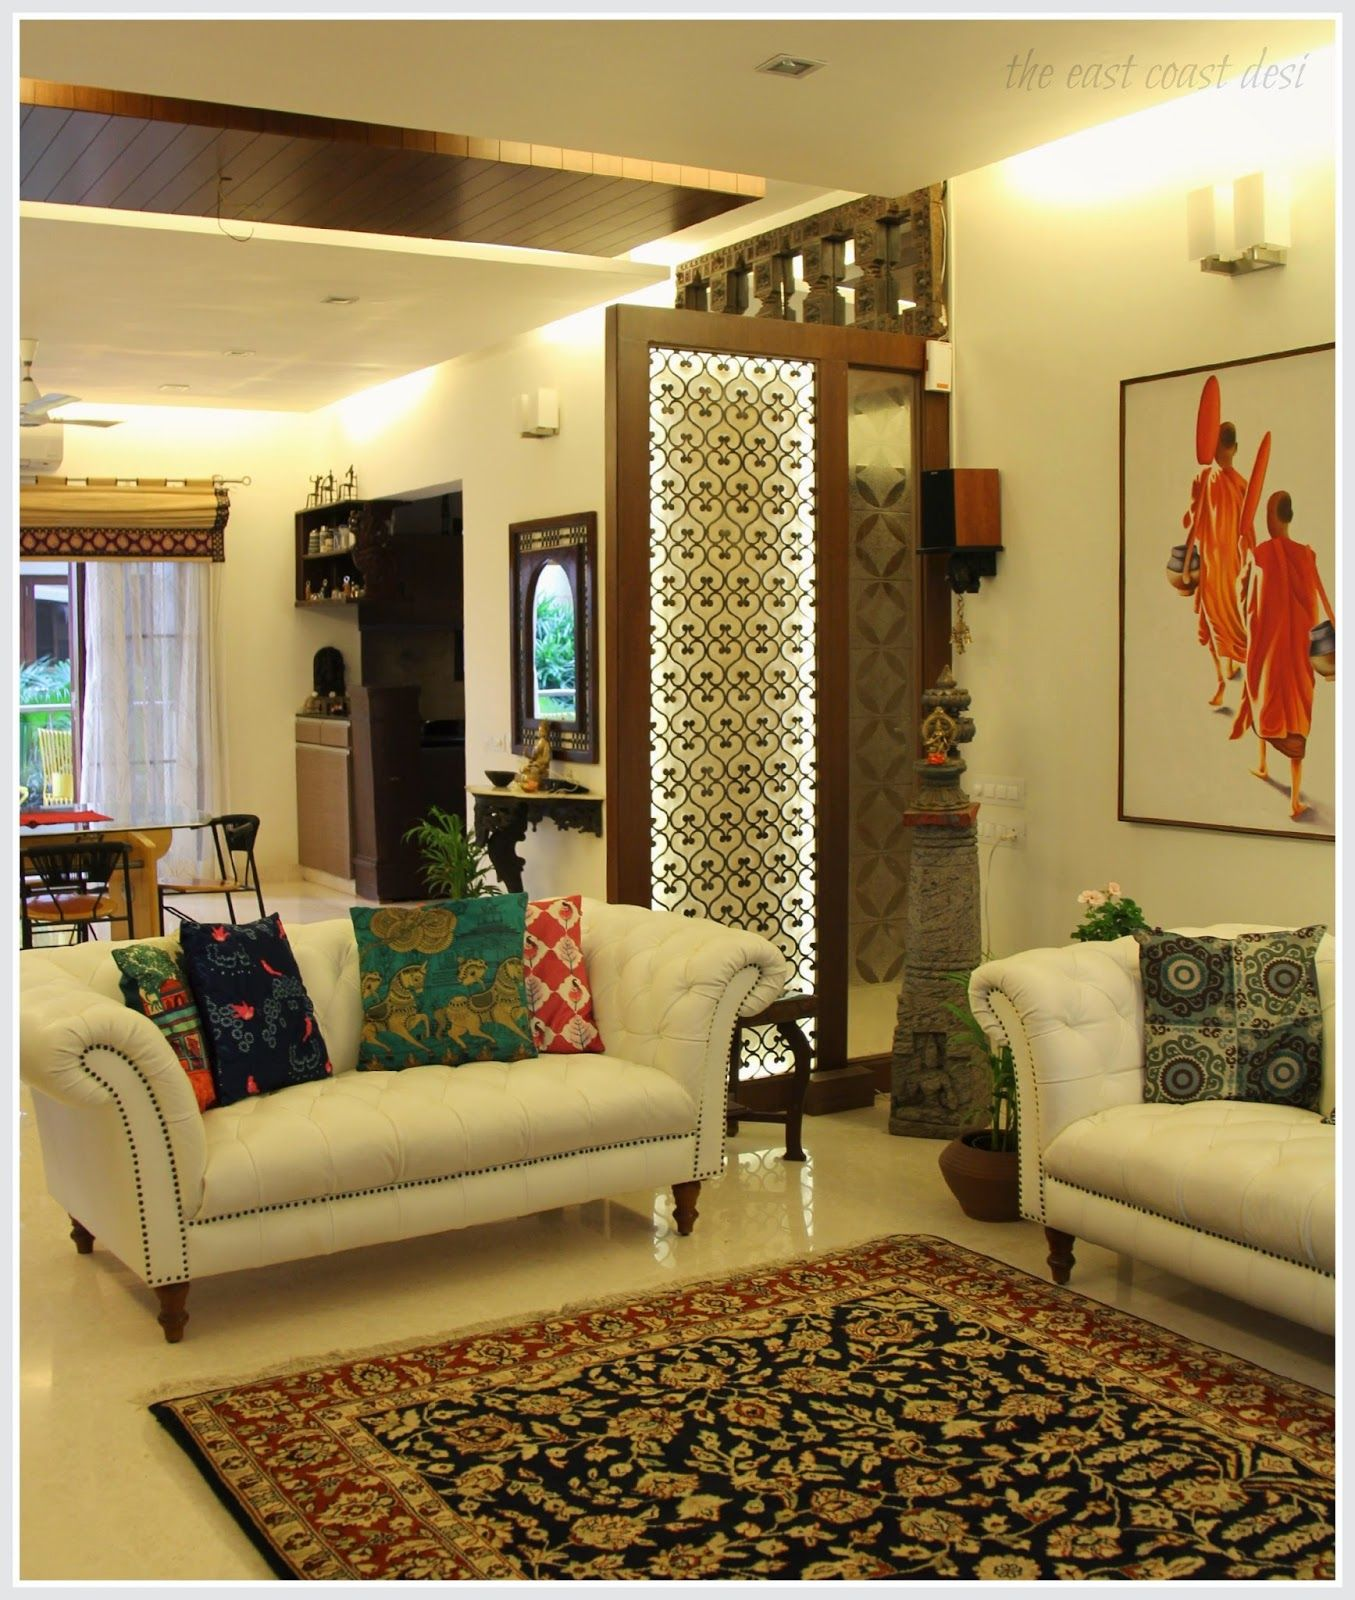 The east coast desi masterful mixing home tour decor - Interior design ideas for indian homes ...